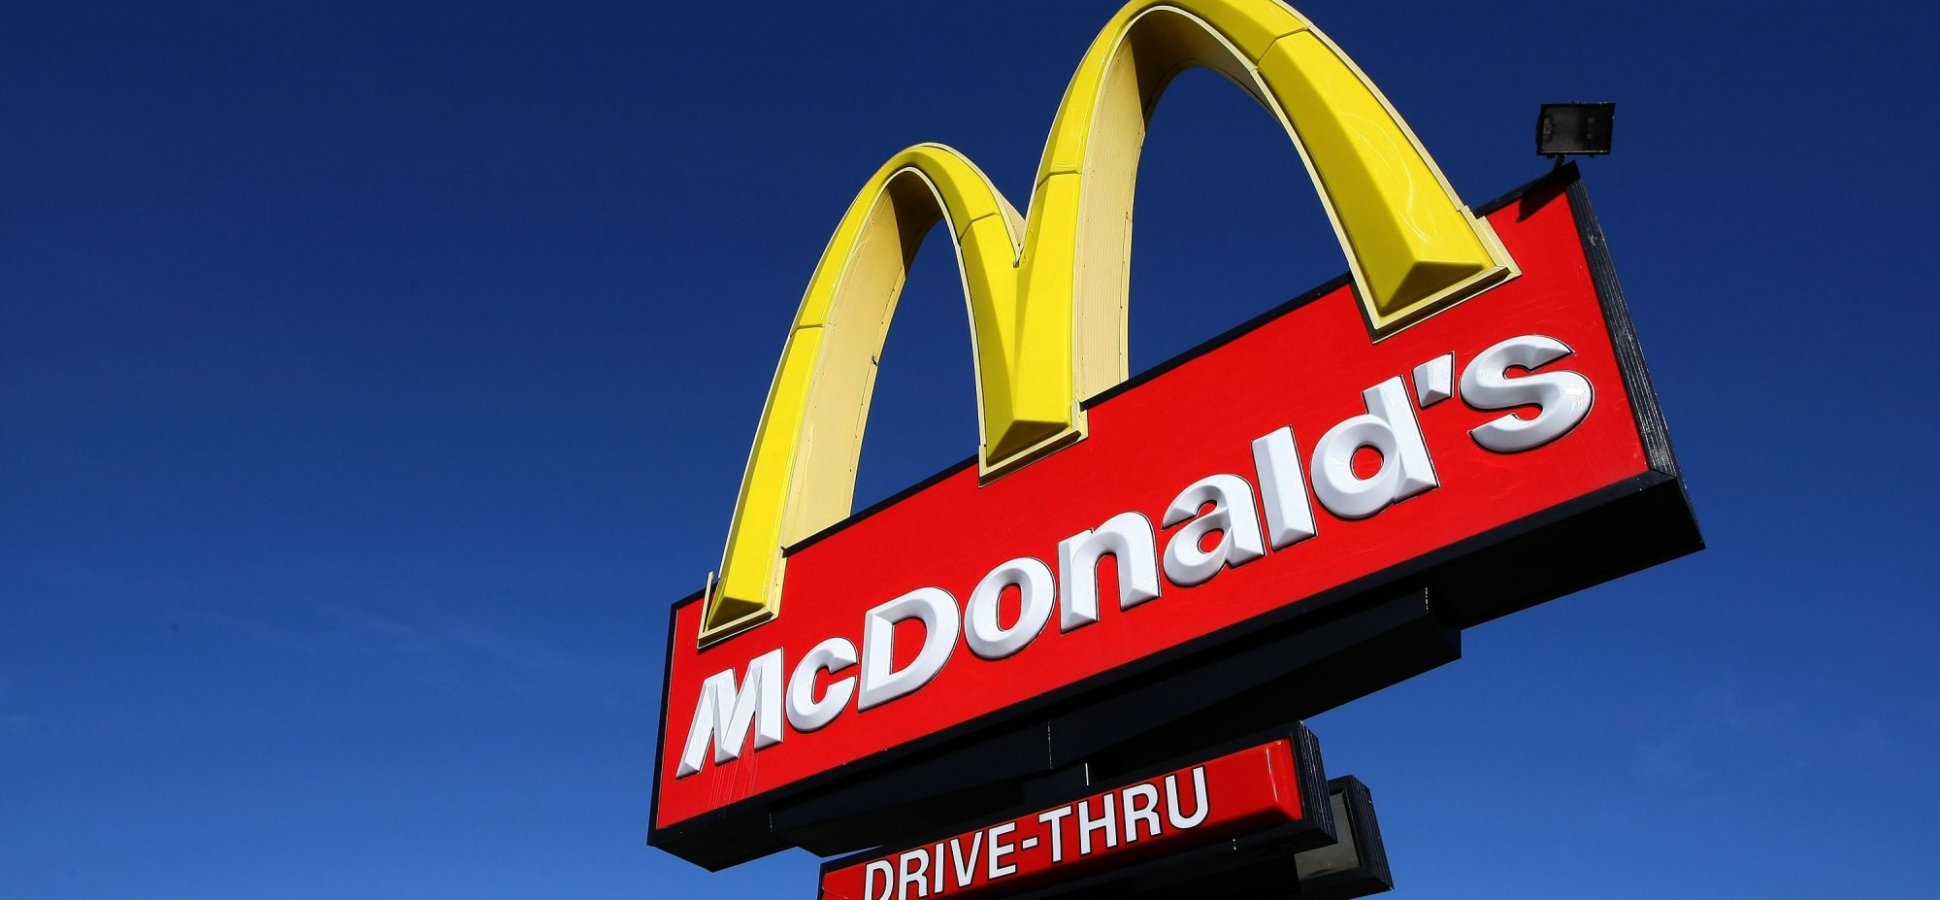 McDonald's Is Making a Surprising Change to Its Menu That Is Going